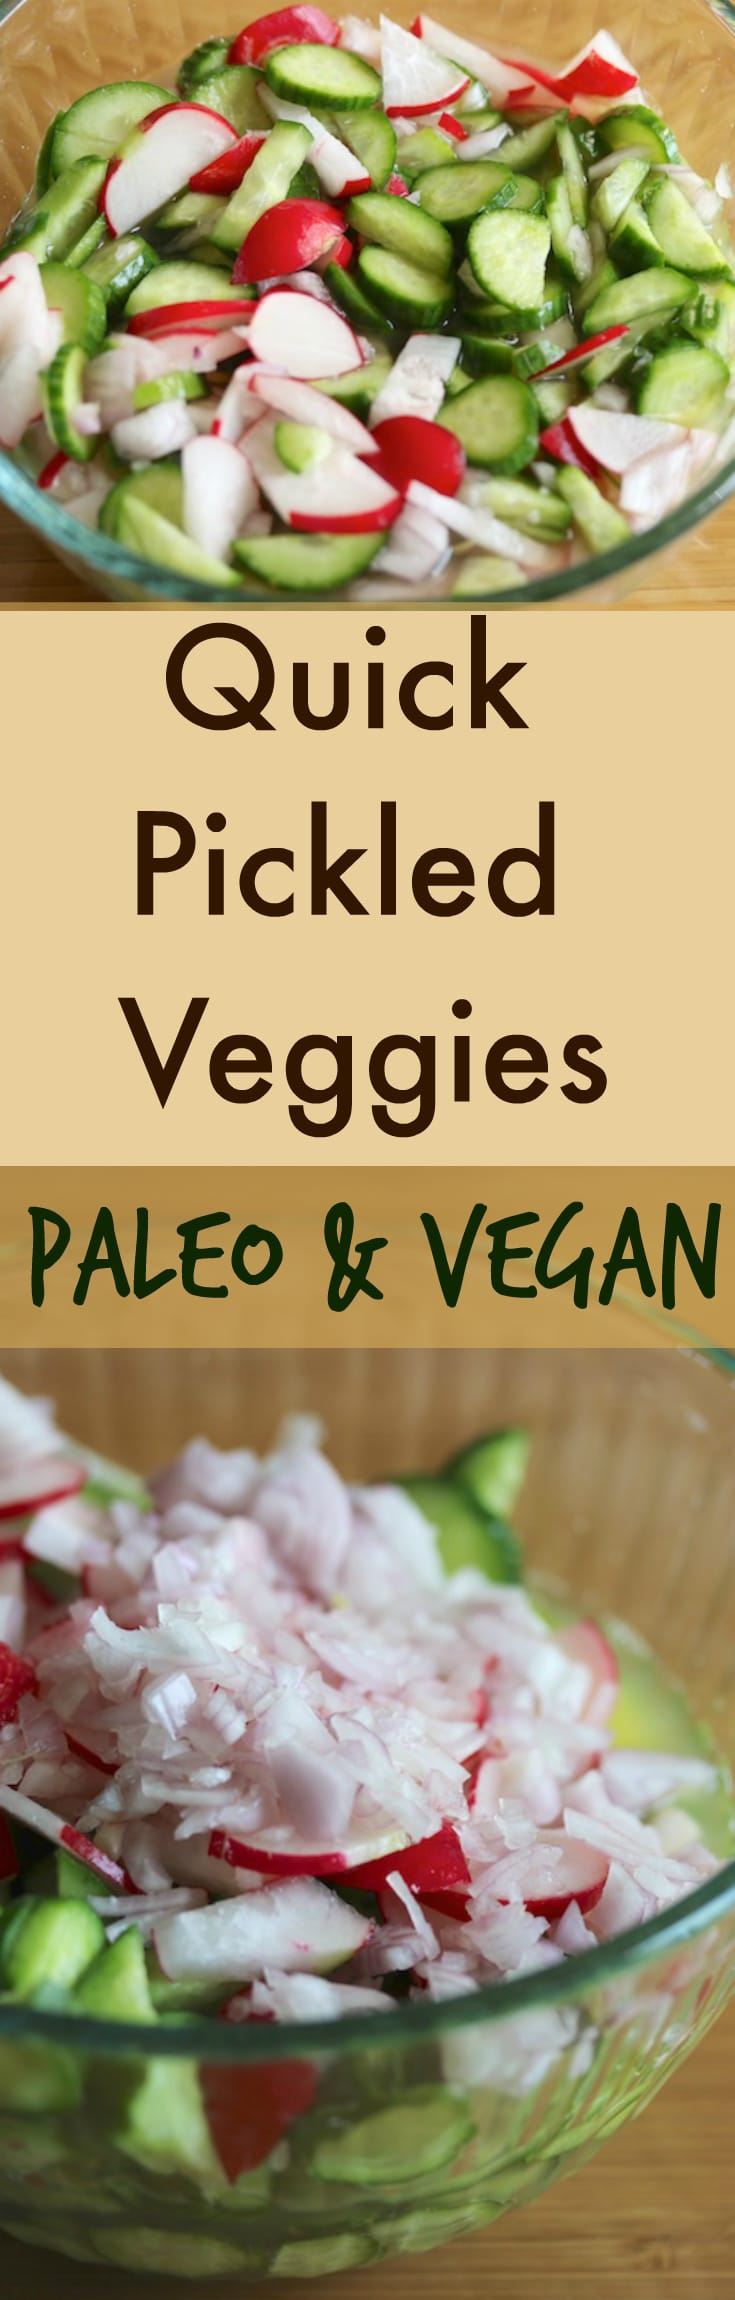 Quick Pickled Veggies recipe for a paleo and vegan healthy side dish